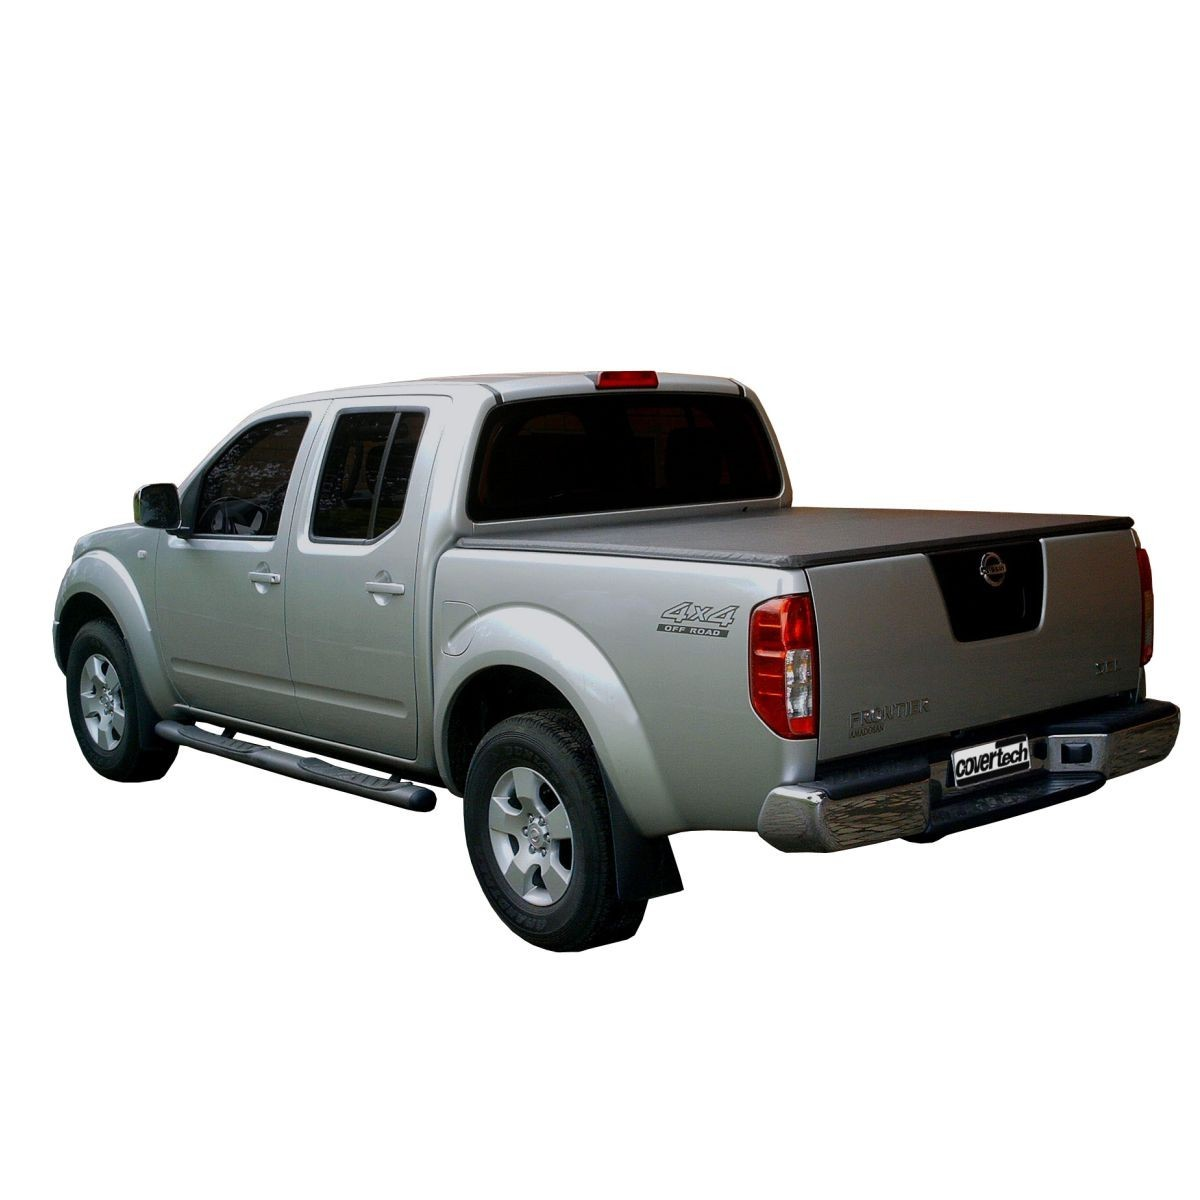 carpa plana para pick up y camionetas nissan navara y frontier. Black Bedroom Furniture Sets. Home Design Ideas